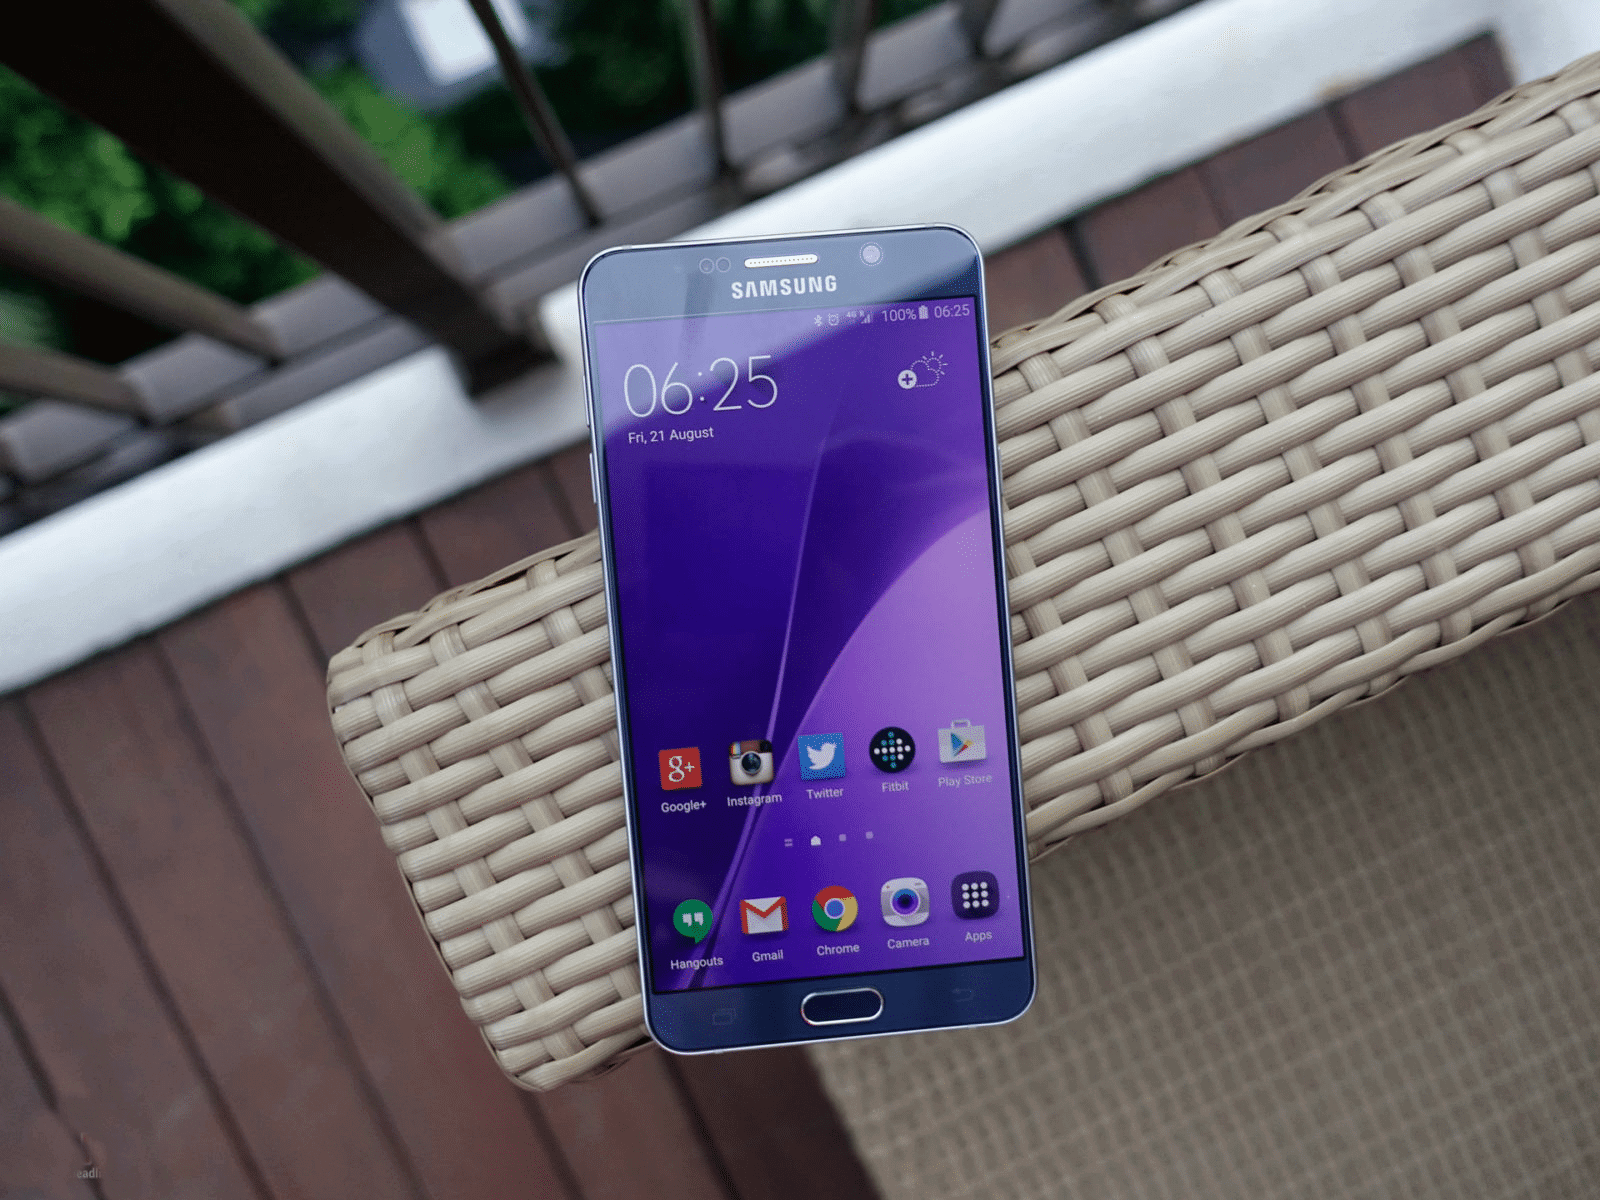 Install UCU4EQC6 Android 7.0 Nougat On AT&T Galaxy Note 5 SM-N920A 1